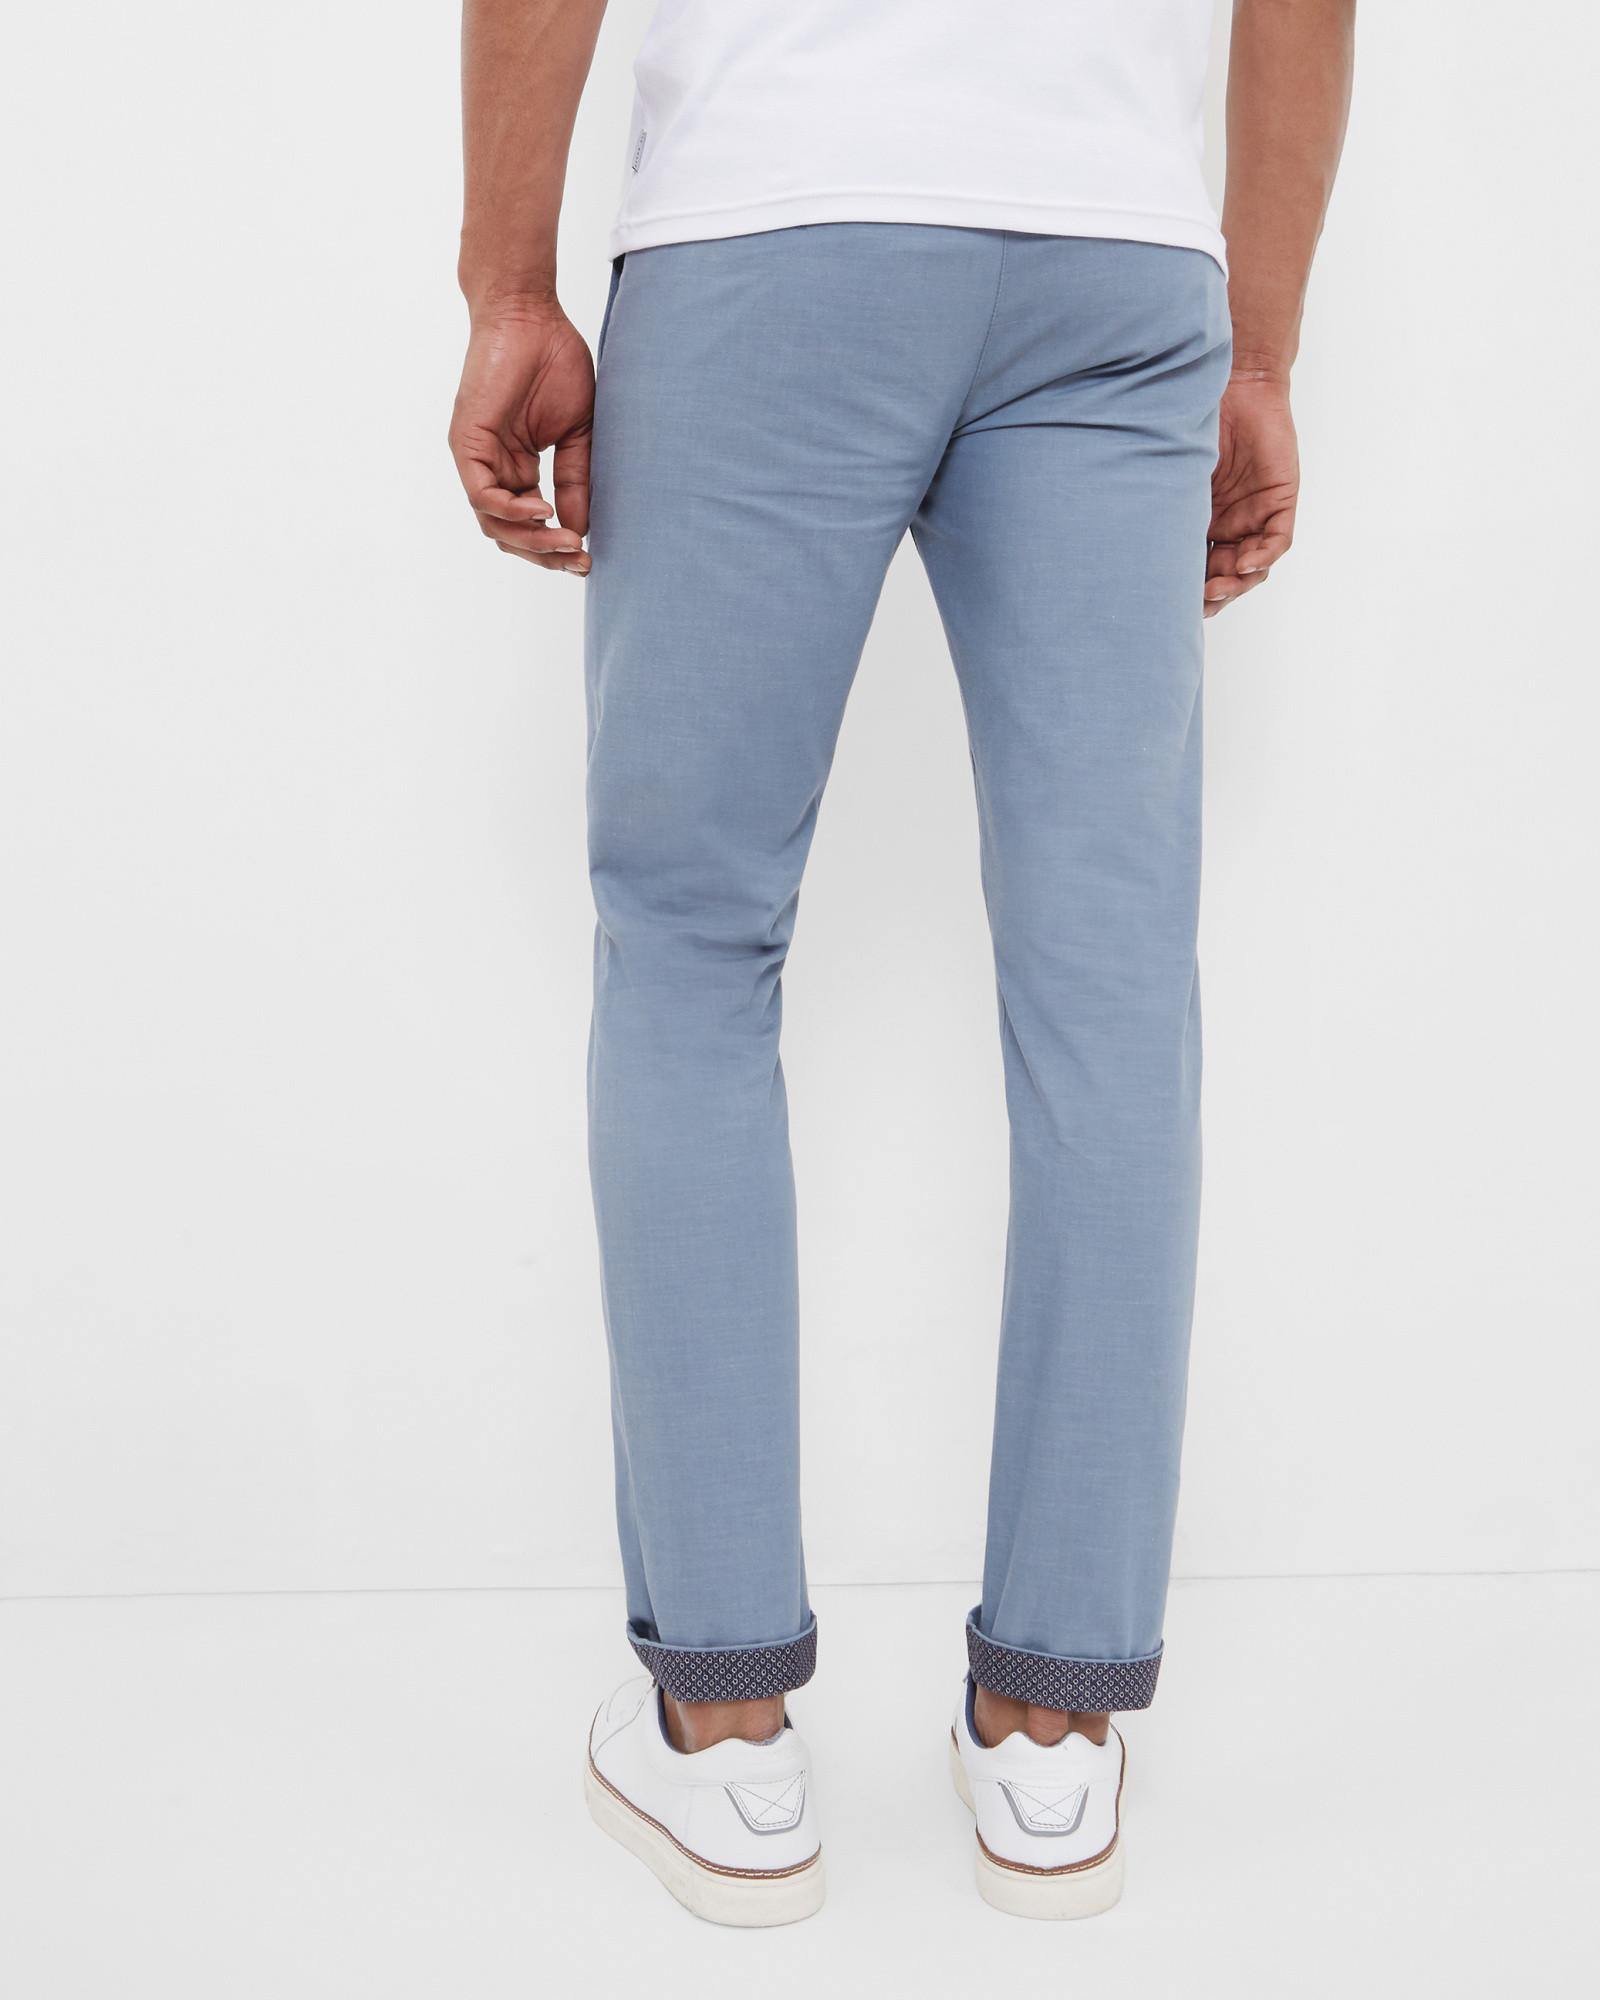 Ted Baker Cotton Slim Fit Trousers in Blue for Men